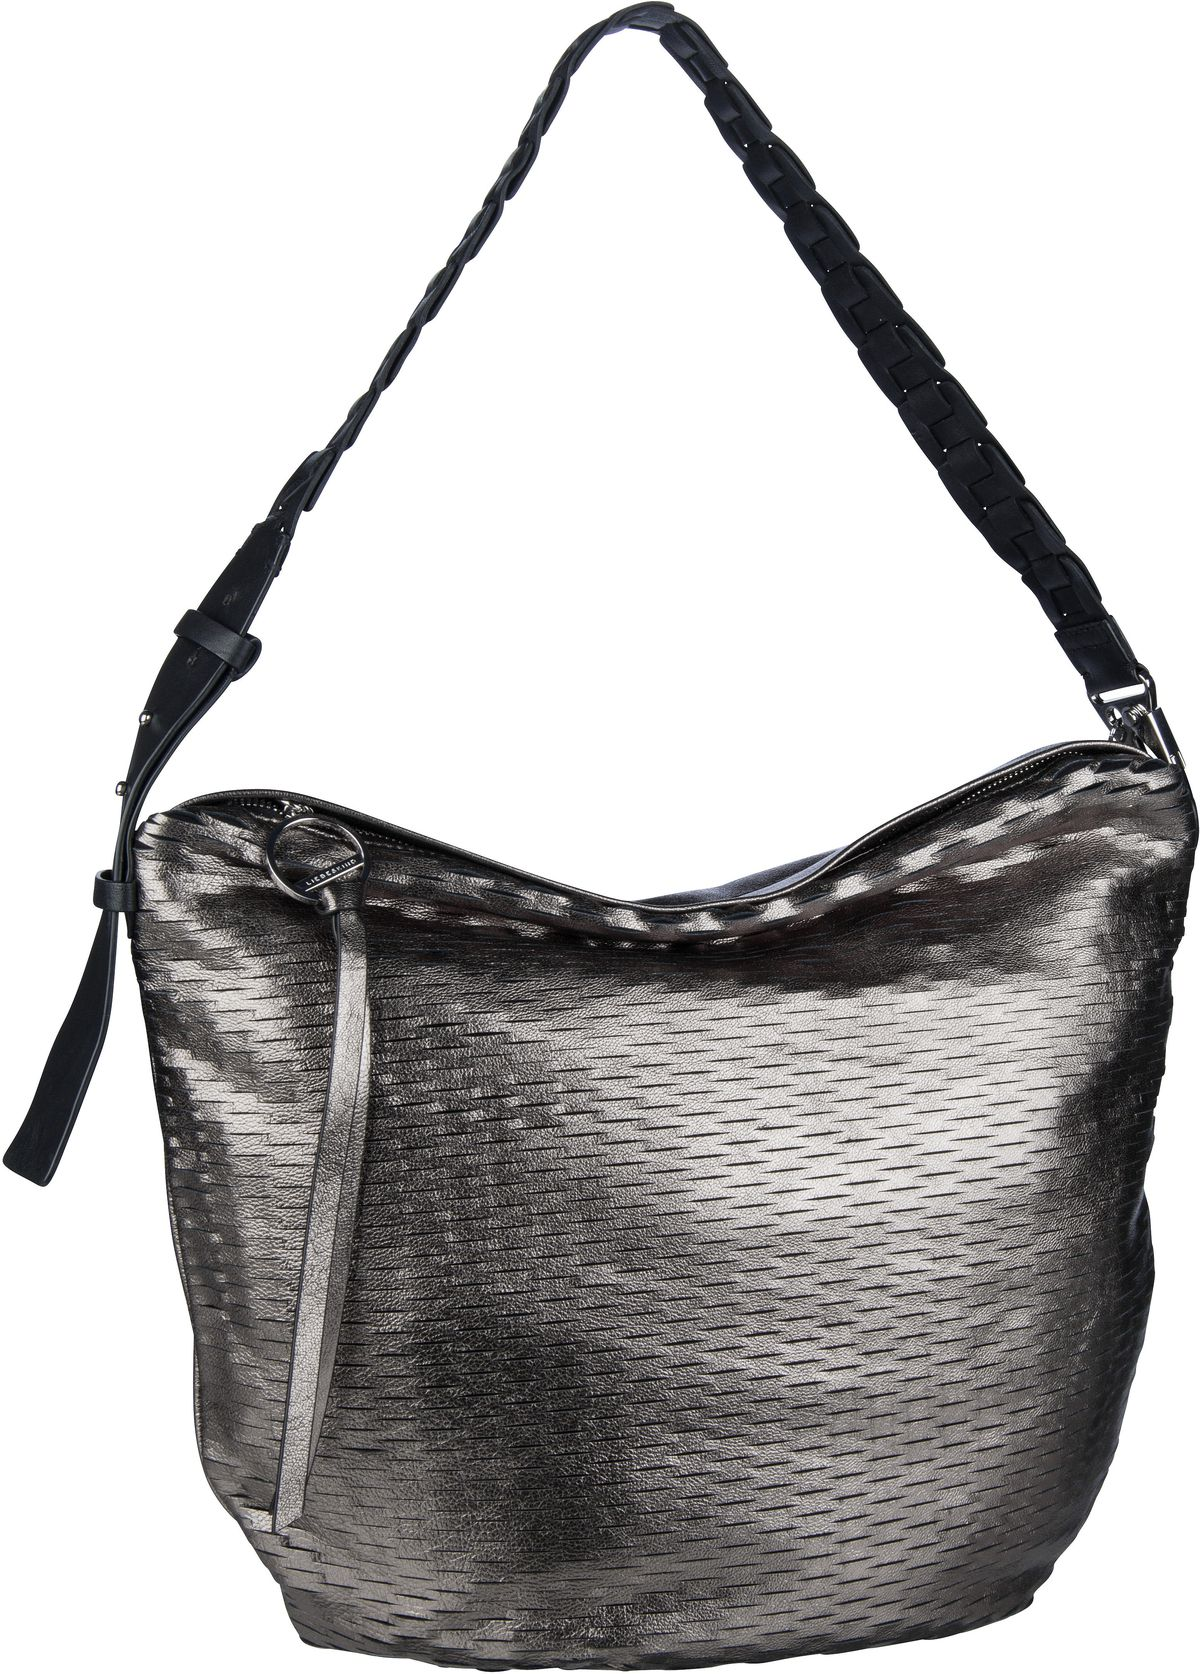 Berlin Handtasche Dive Bag 2 Metallic Hobo M Warm Silver